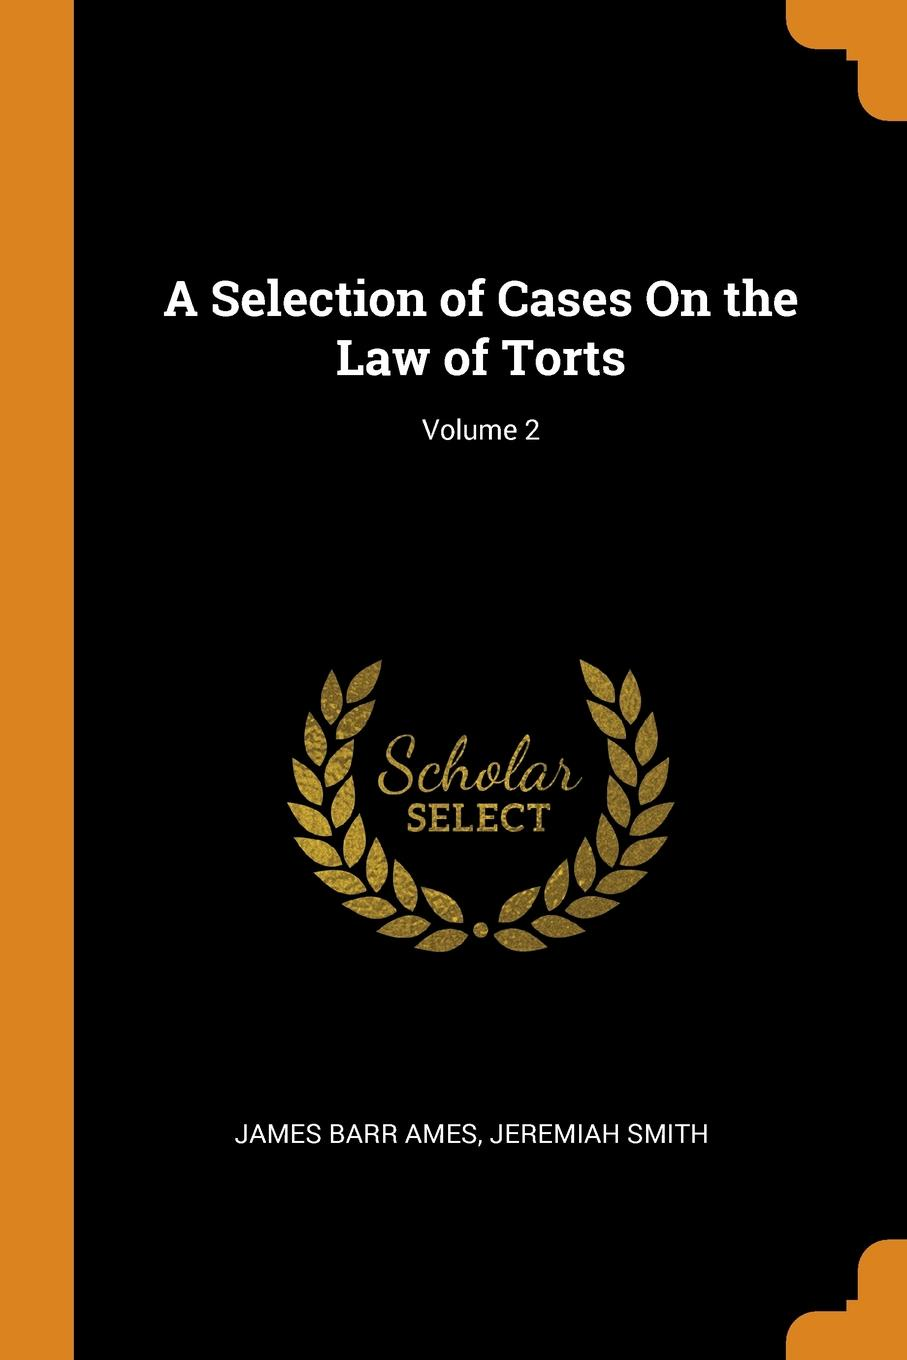 James Barr Ames, Jeremiah Smith. A Selection of Cases On the Law of Torts; Volume 2